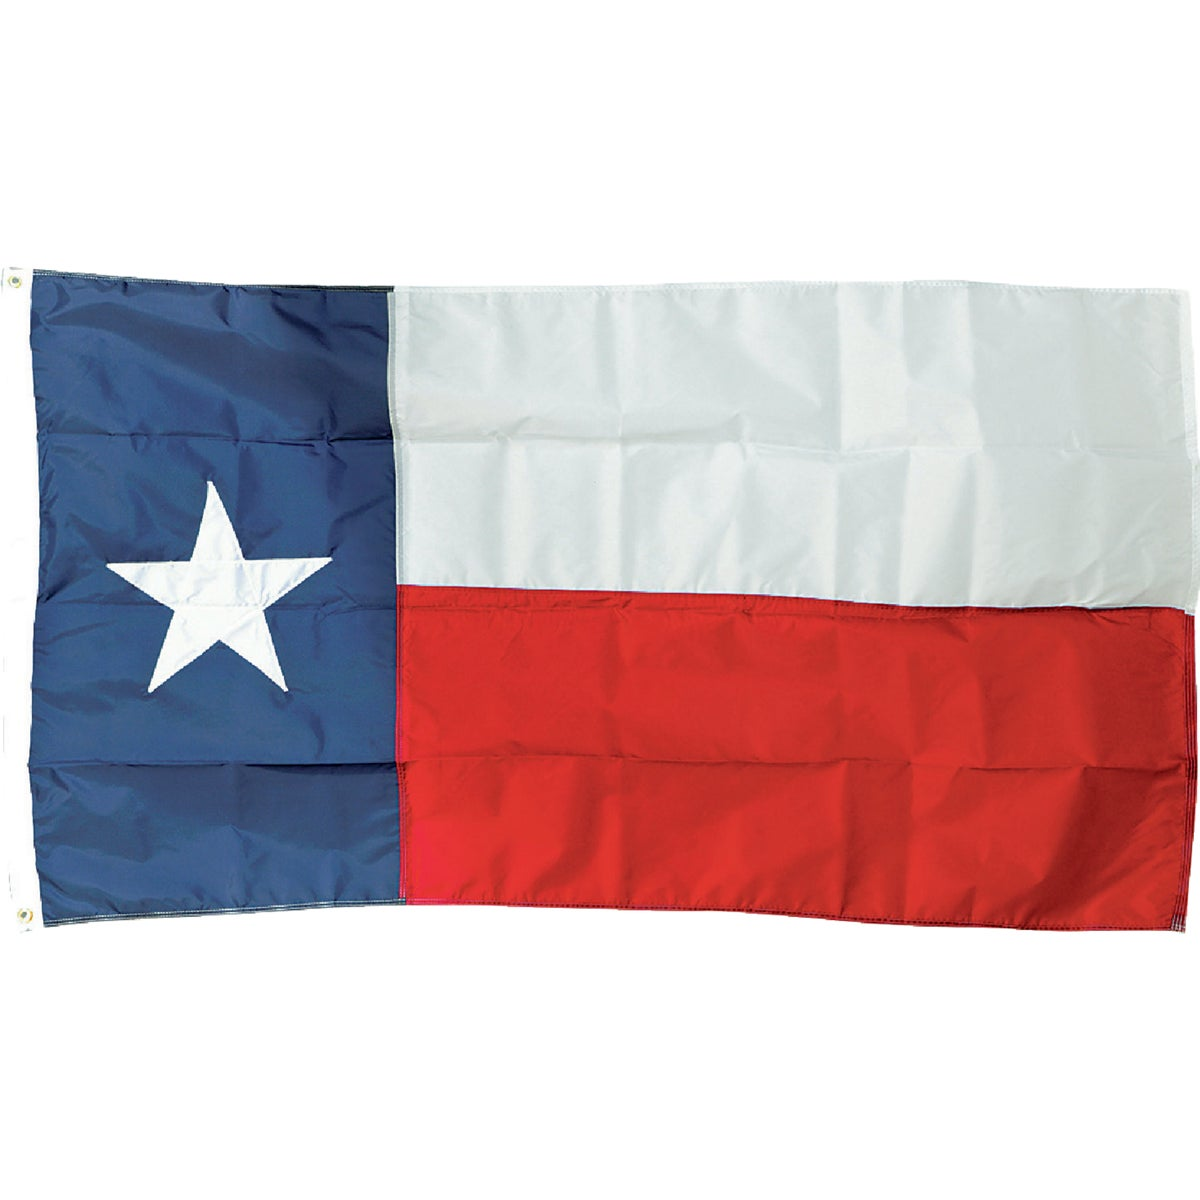 TEXAS STATE FLAG - TX3 by Valley Forge Flag